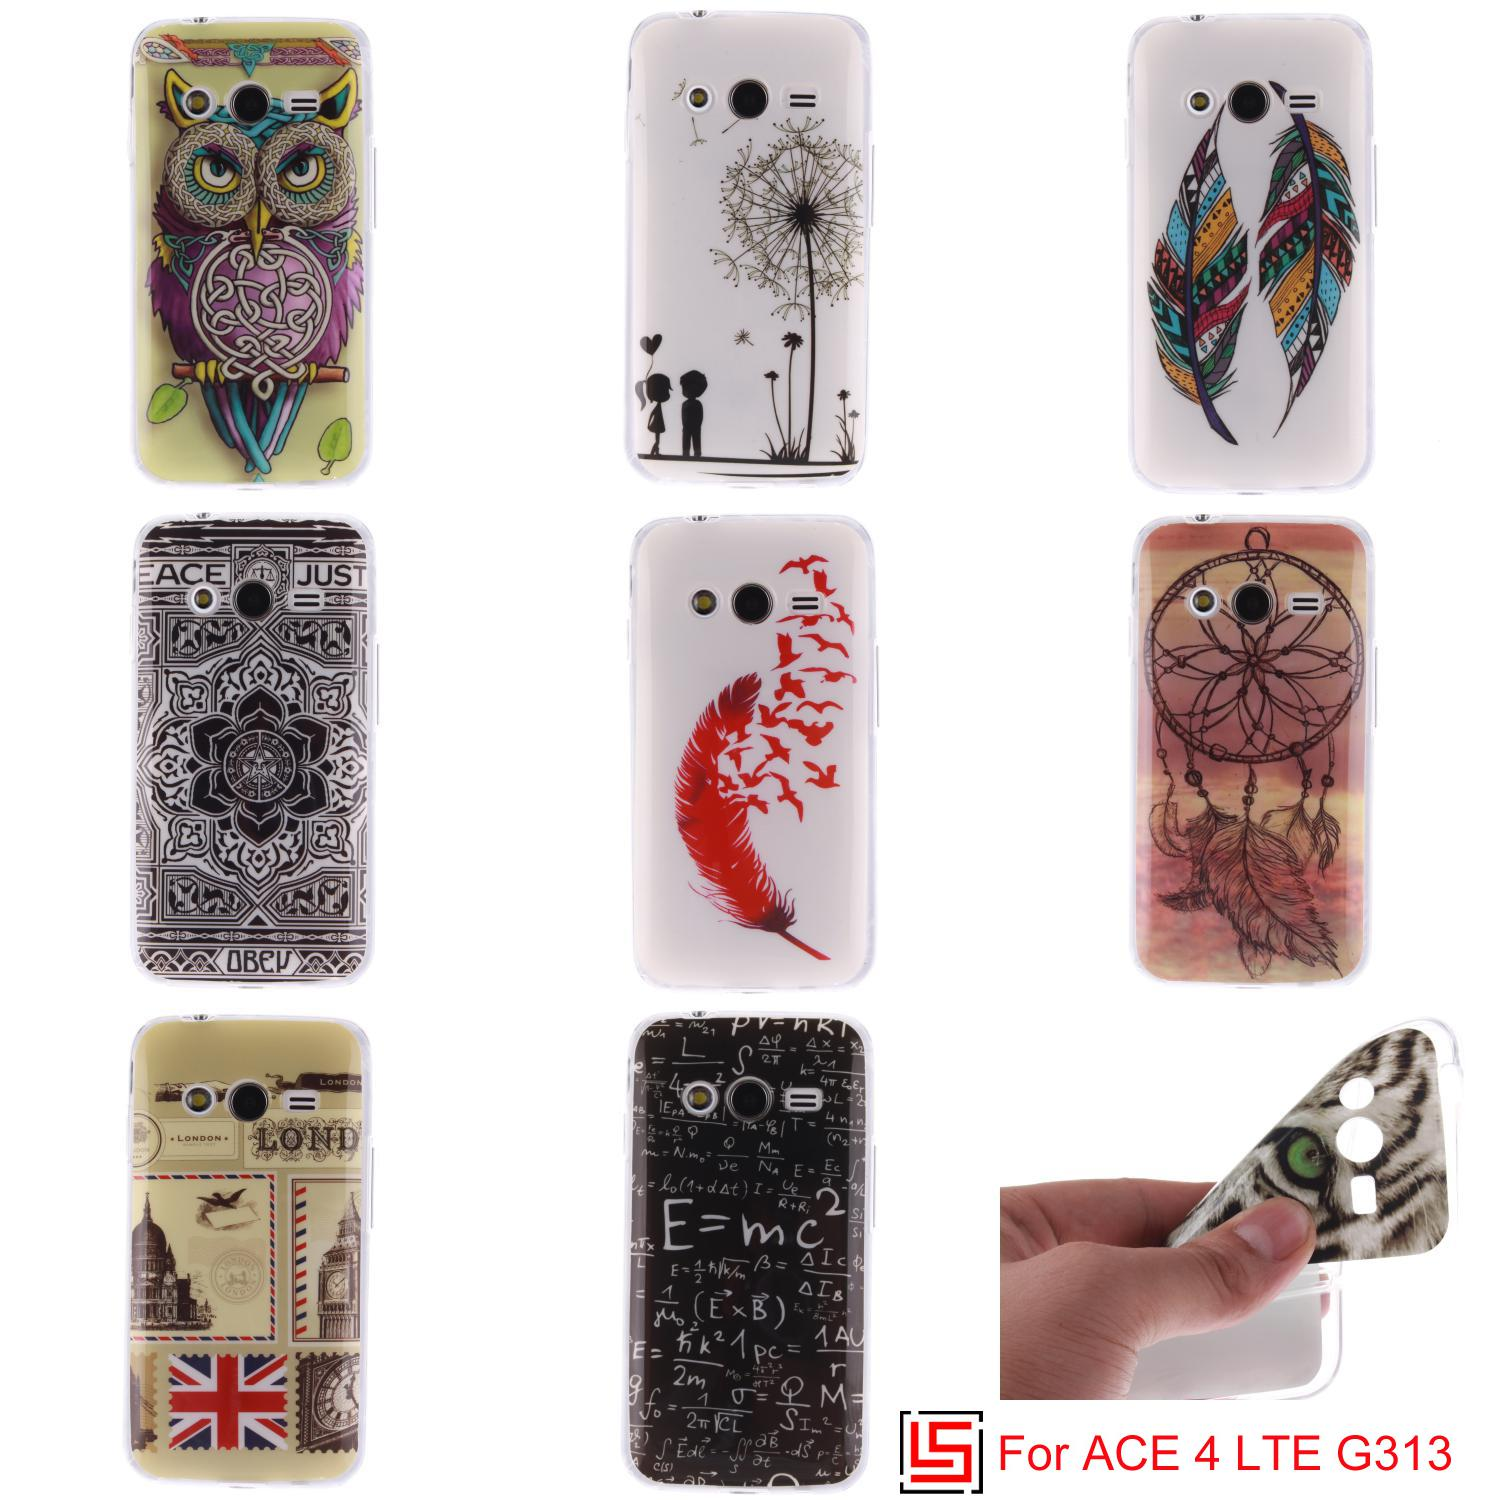 Cheap Ultra Thin TPU Silicone Soft Phone Cell Mobile Case Cover Cove For Samsung Samsun Galaxy Galaxi ACE 4 LTE G 313 G313(China (Mainland))